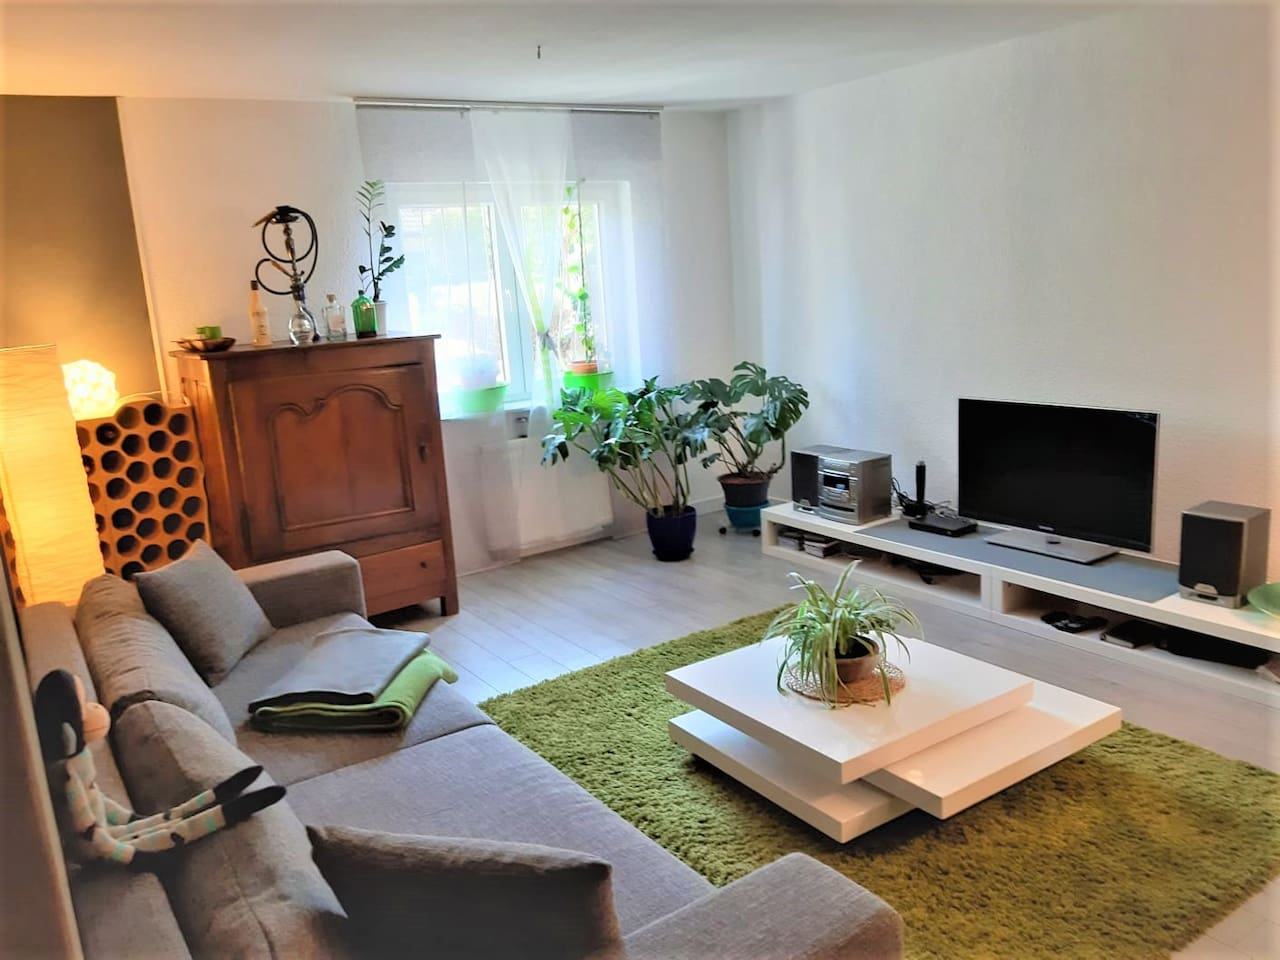 spacious living room with a sleeping sofa and a TV